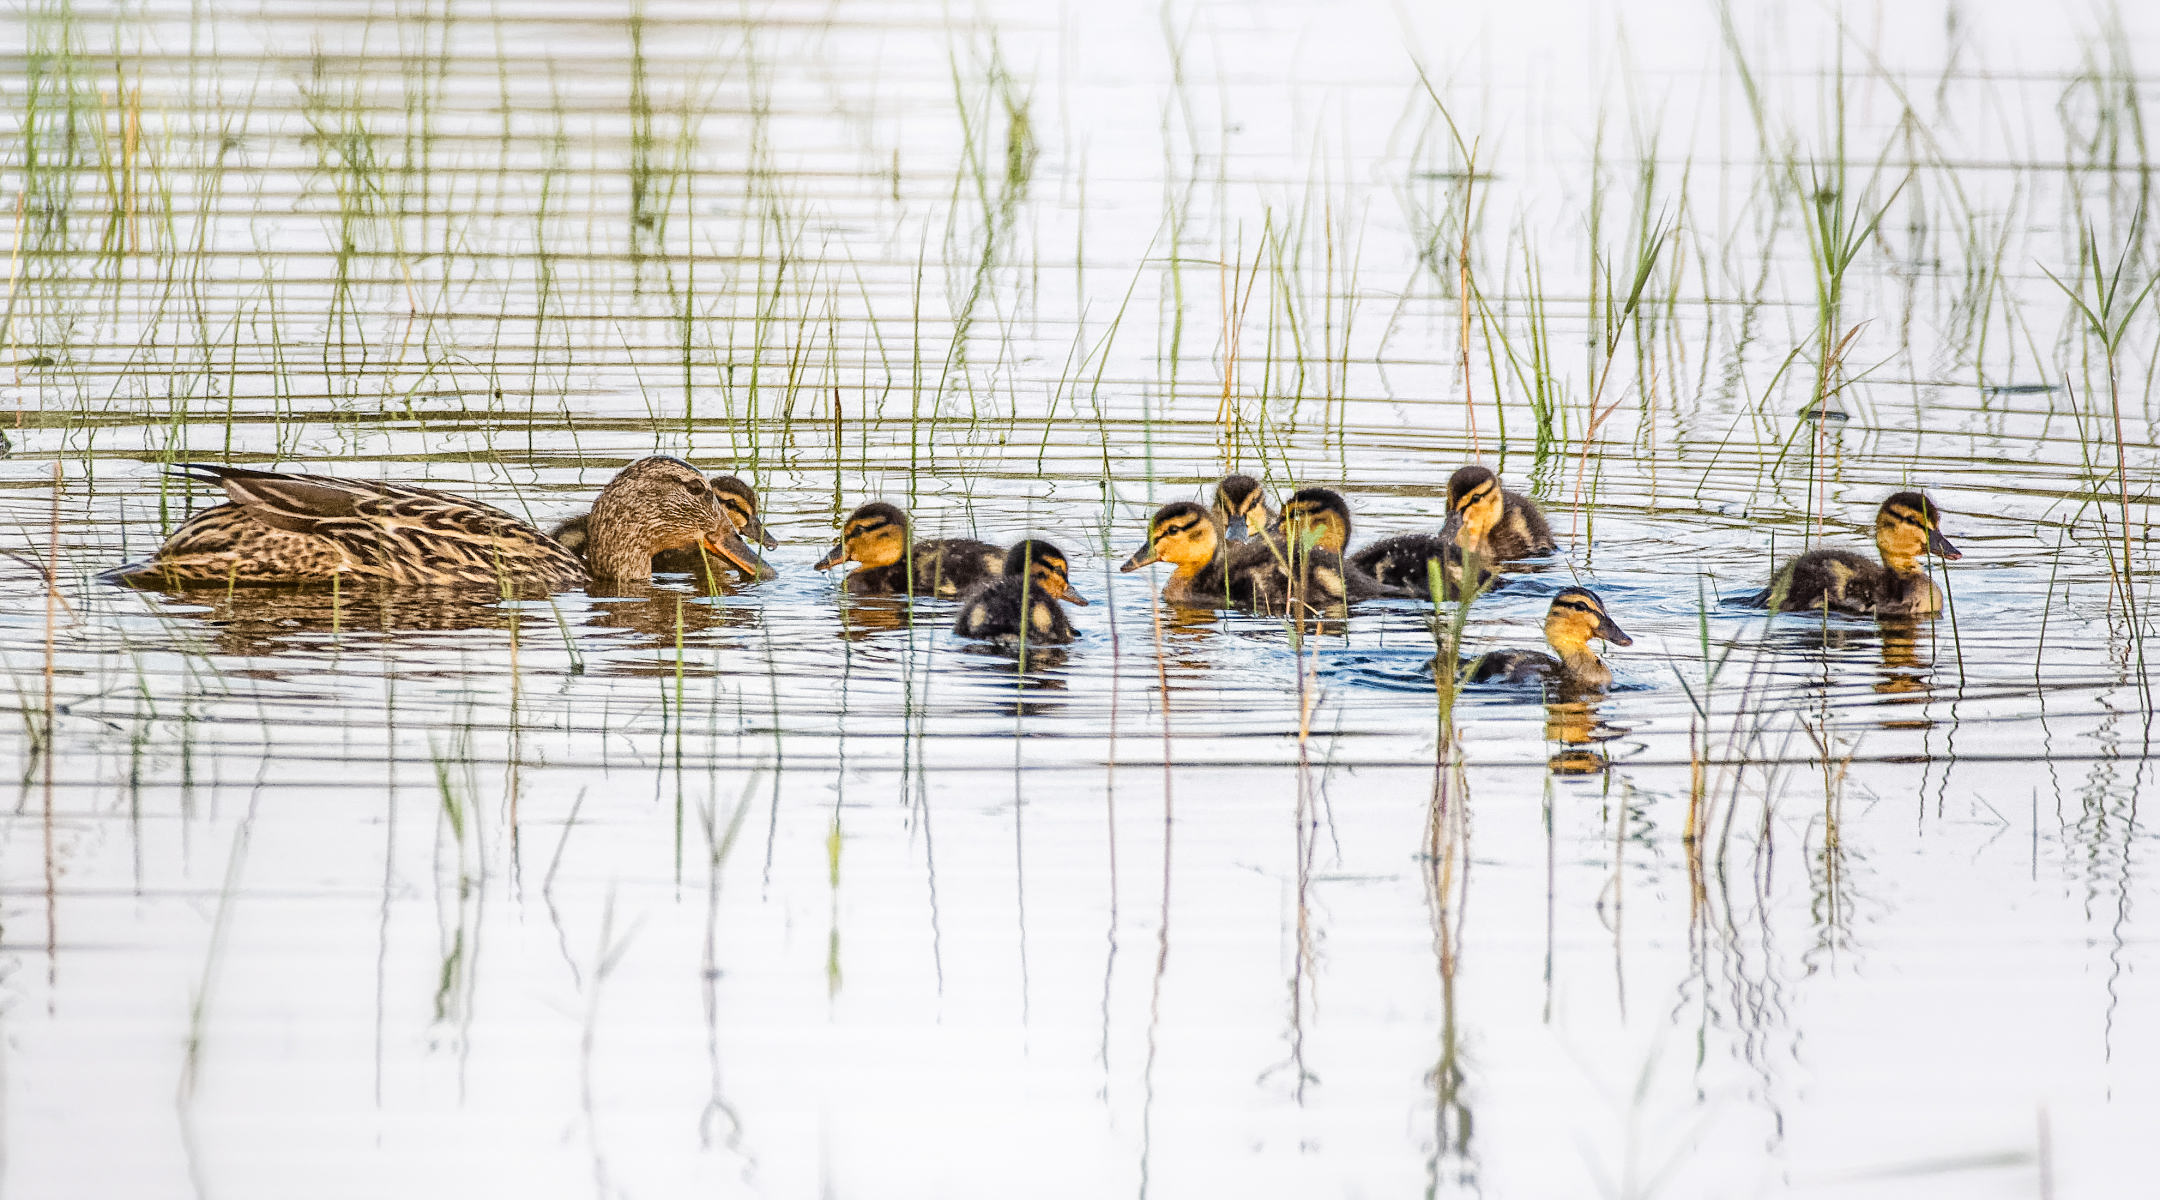 mallard family with ducklings gathering in the reeds